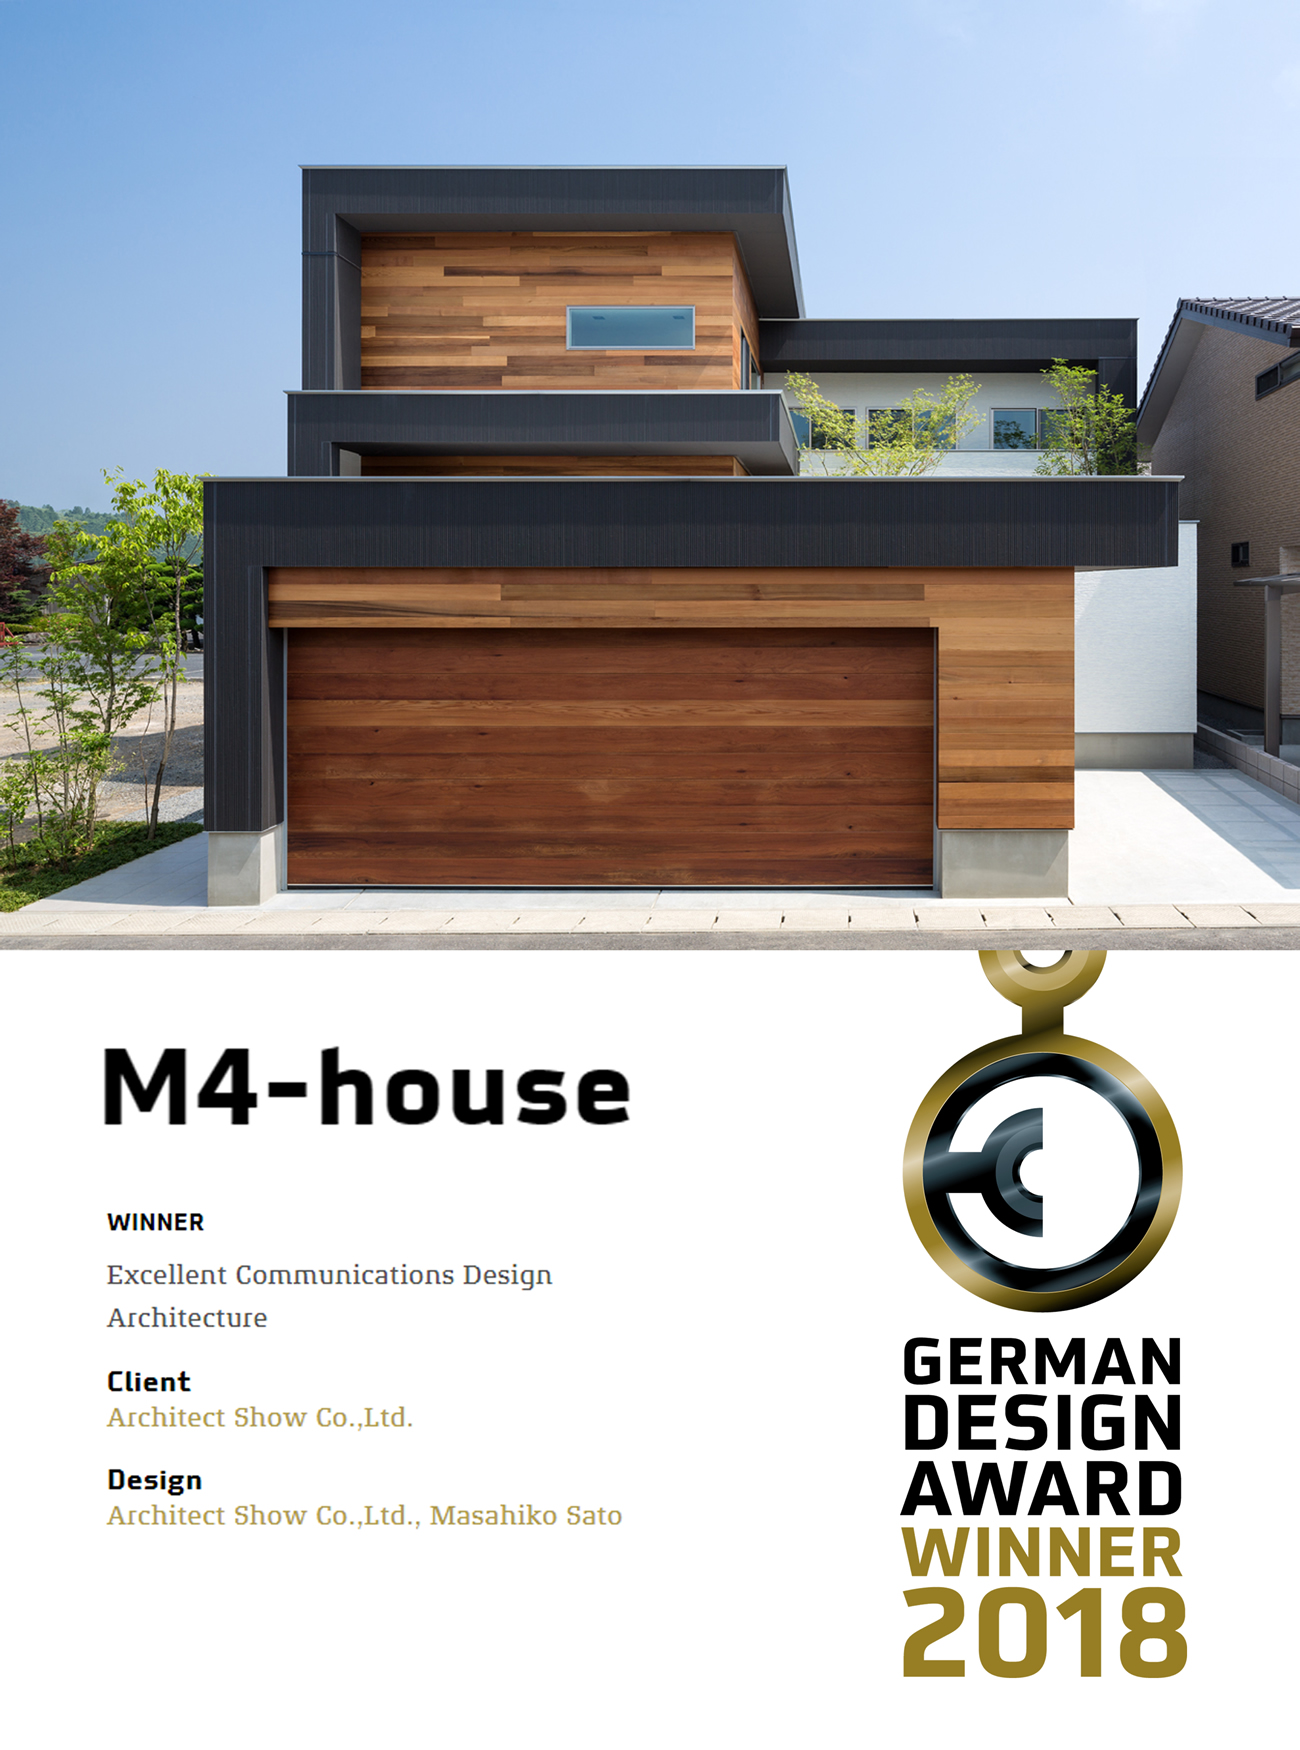 M4-house「重なり合う家」がドイツの『German Design Award 2018』Excellent Communication Design Architecture賞を受賞